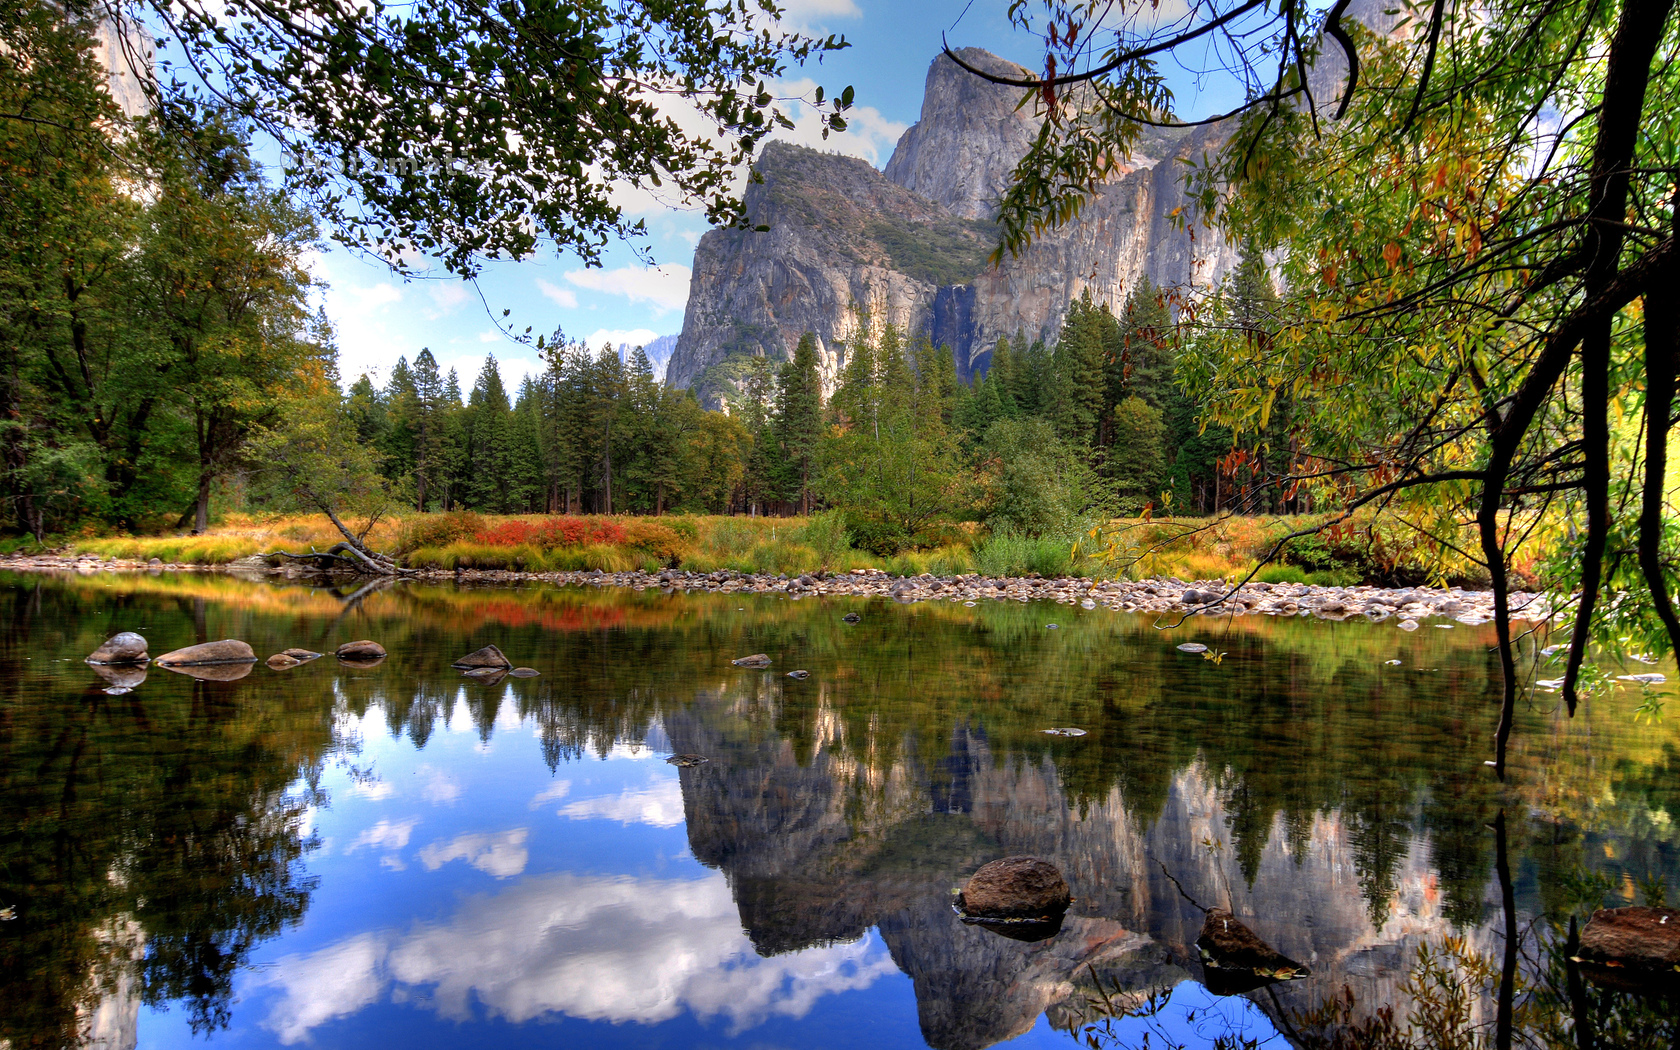 nature wallpapers 1680x1050: Yosemite National Park Wallpapers